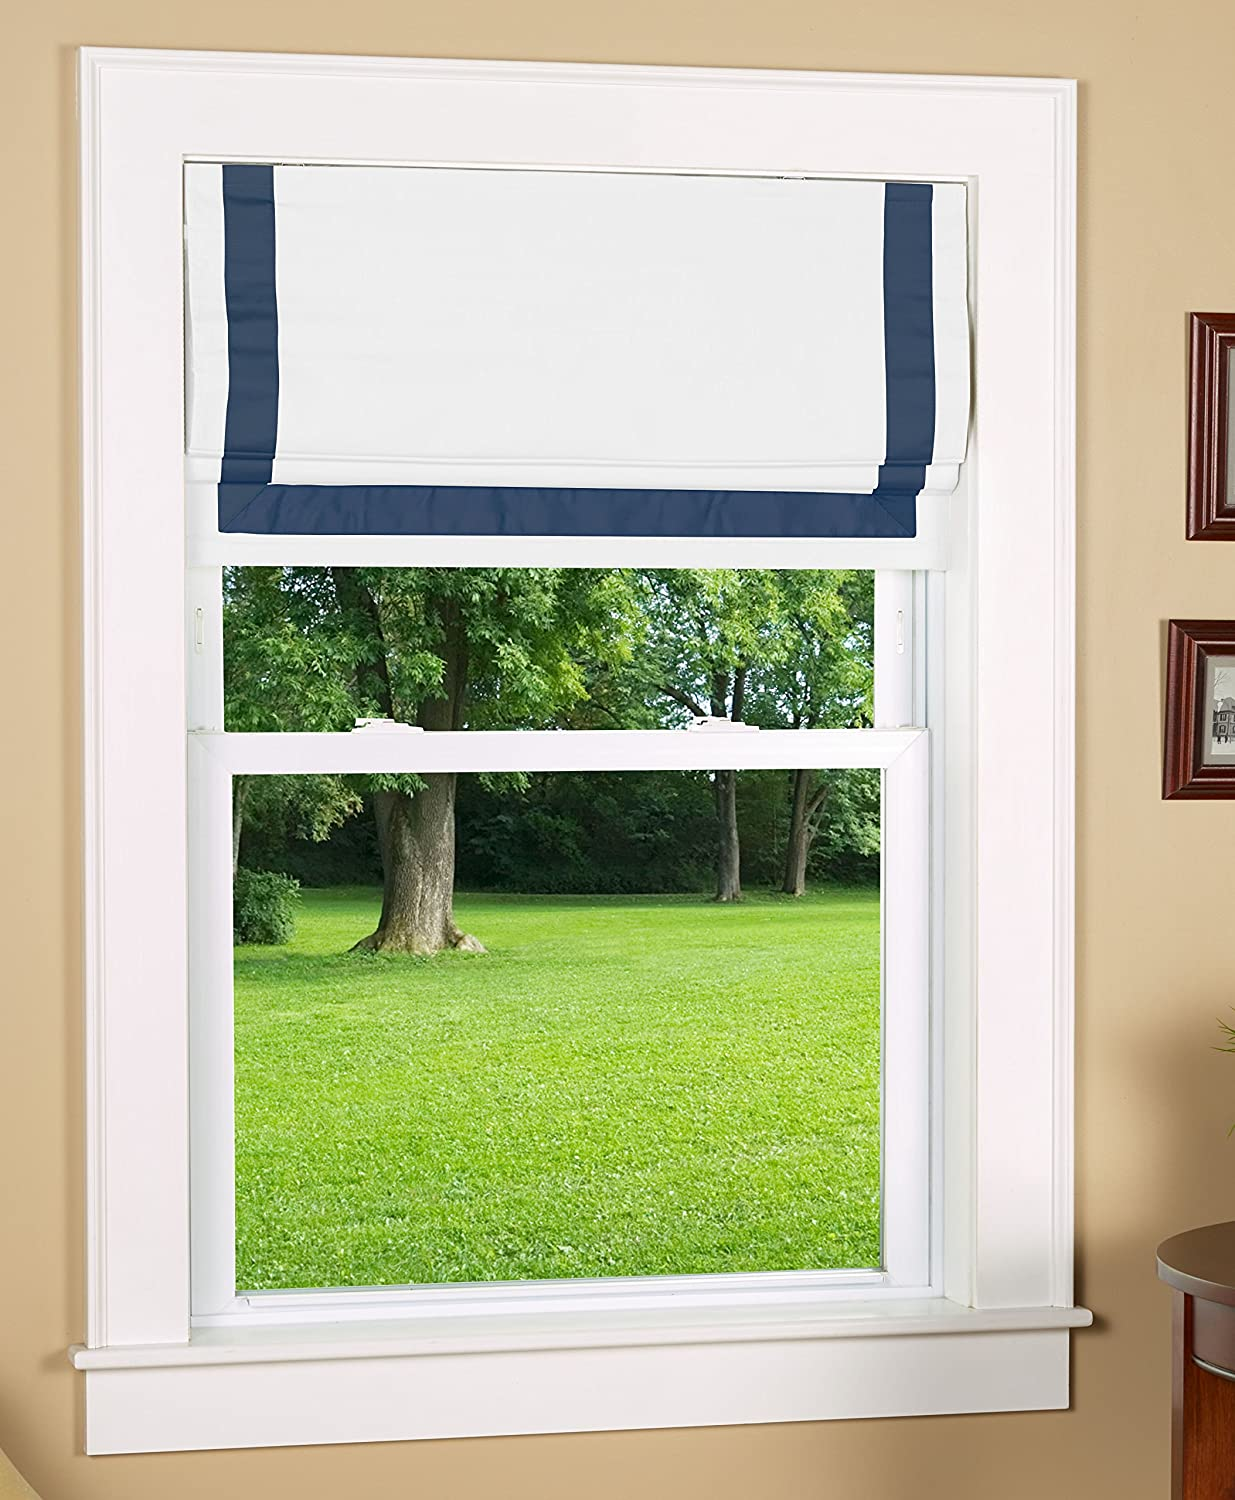 Size 30 Wide x 63 Long White Face Fabric with Navy Blue Border Green Mountain Vista Thermal Blackout Cordless Roman Shade with Ribbon Border